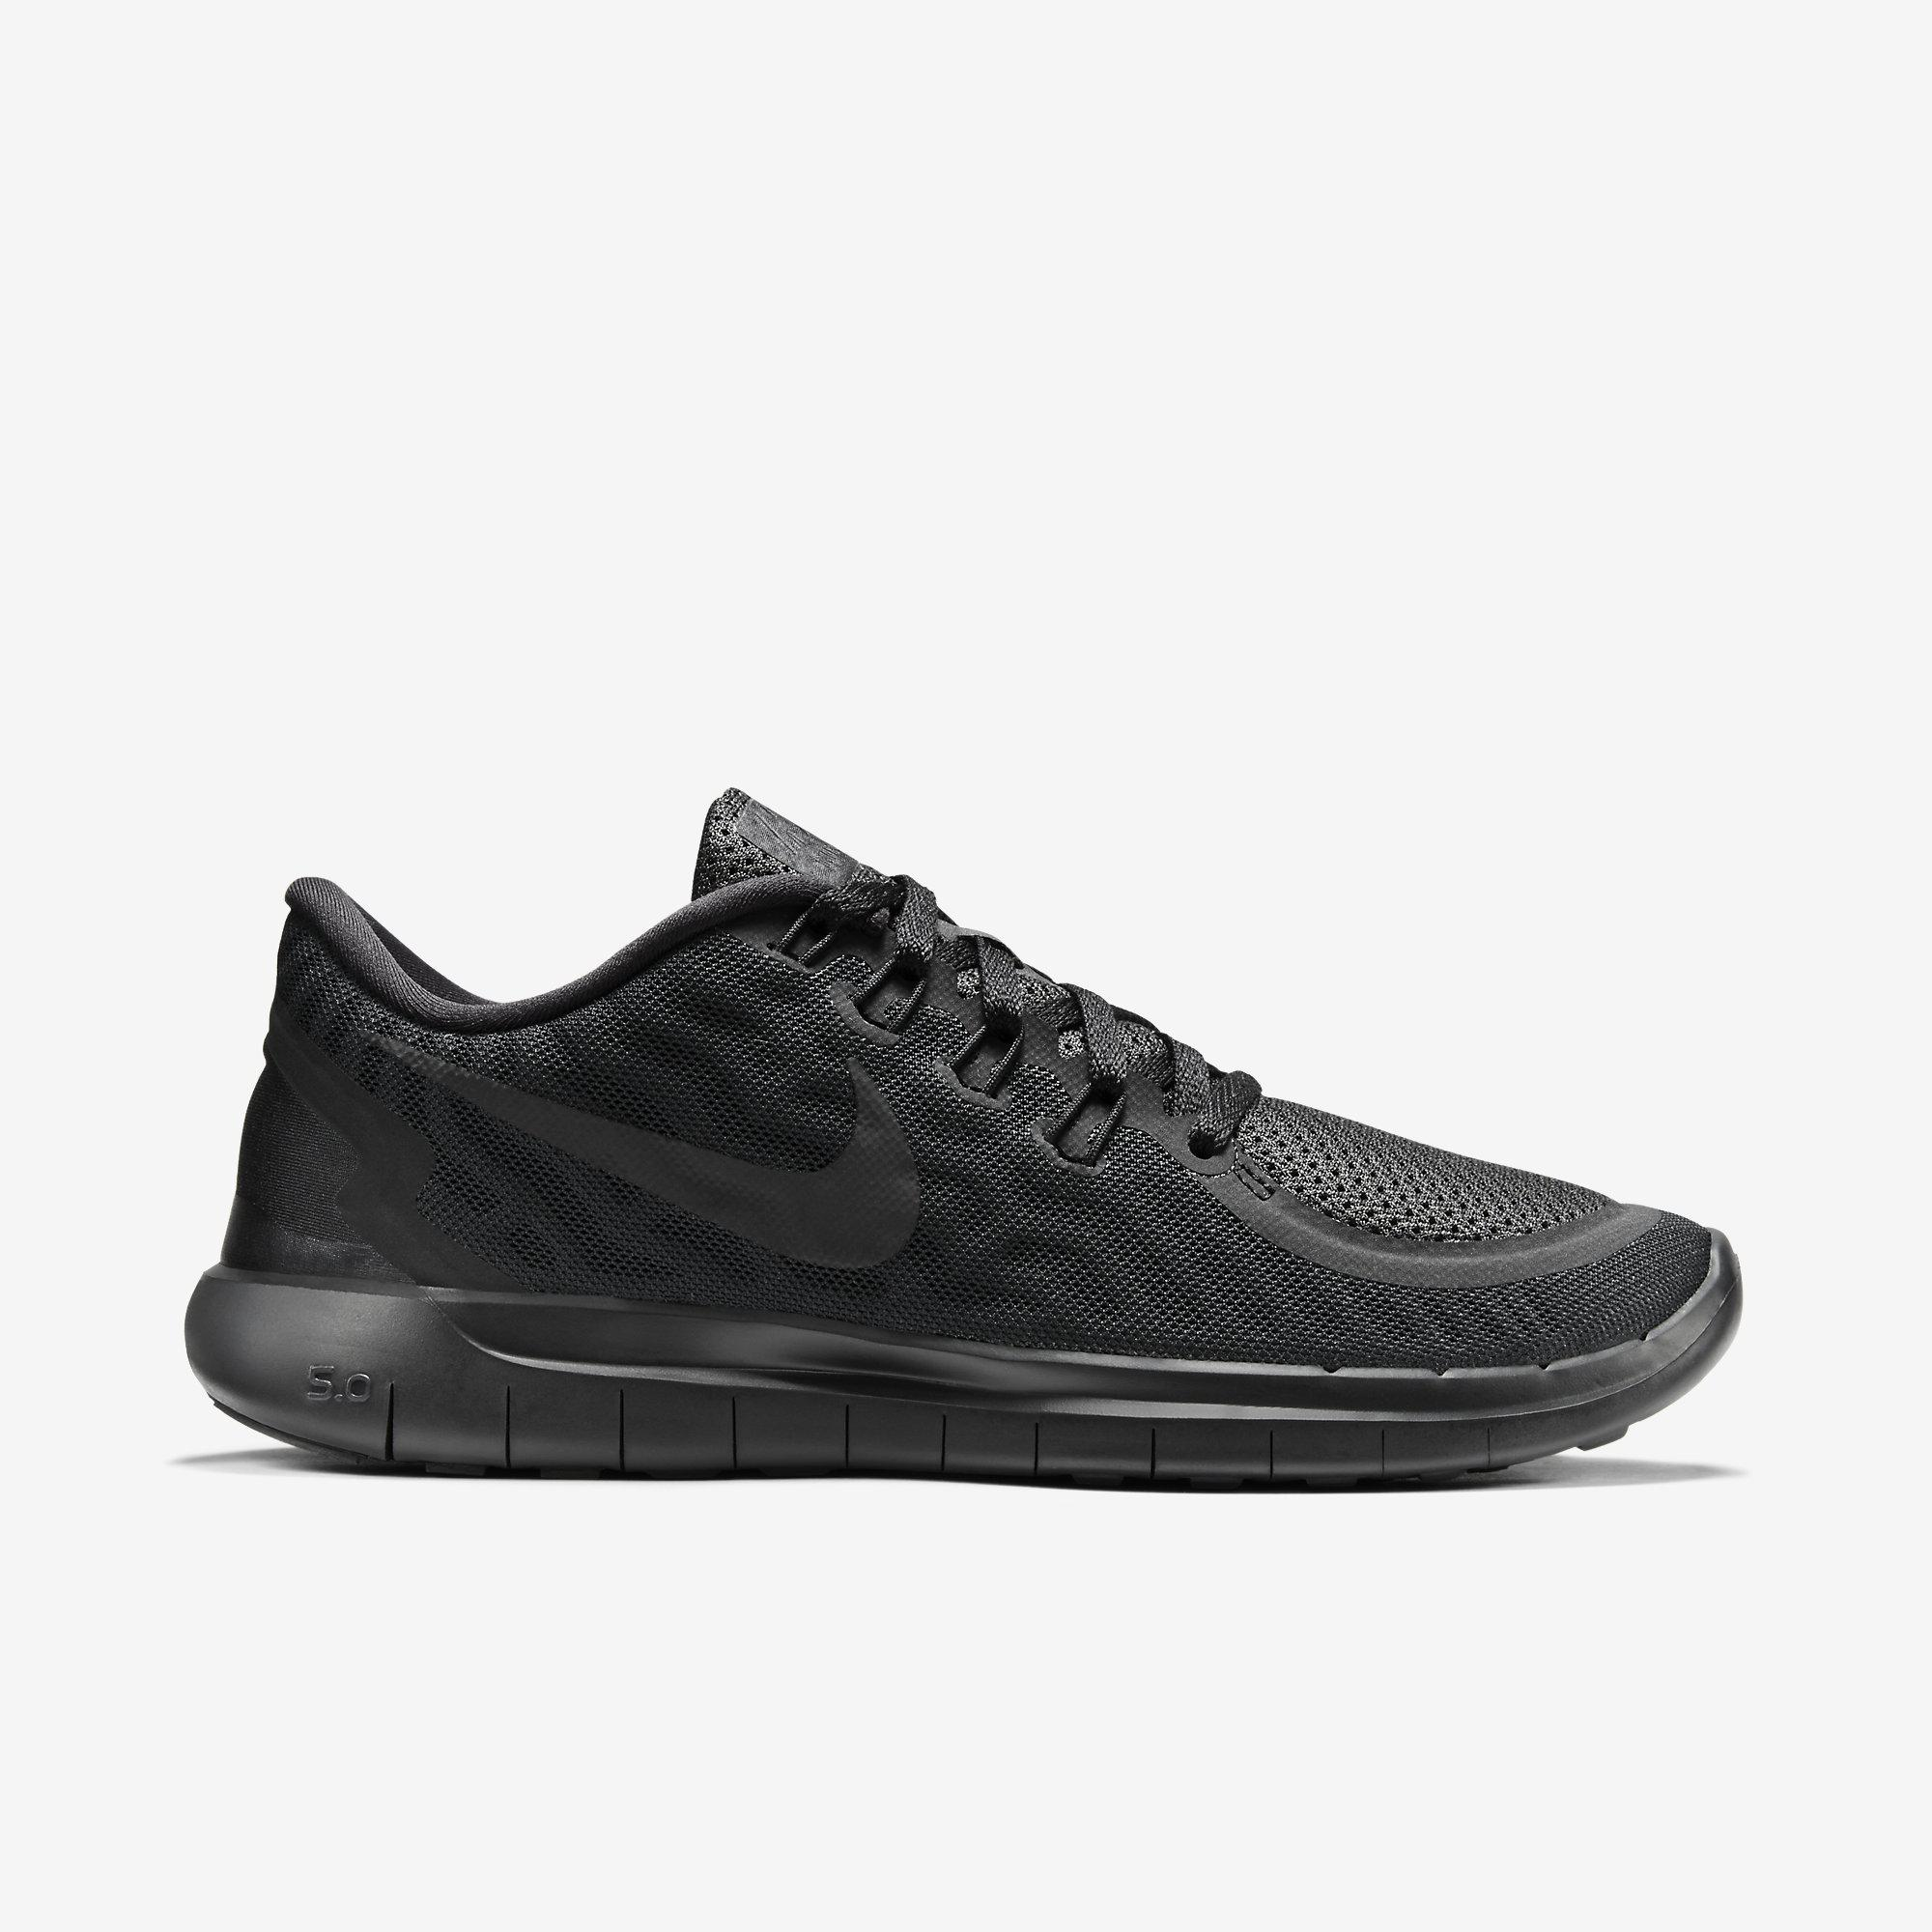 15ce2851dce5b Nike Womens Free 5.0+ Running Shoes - Black Anthracite - Tennisnuts.com